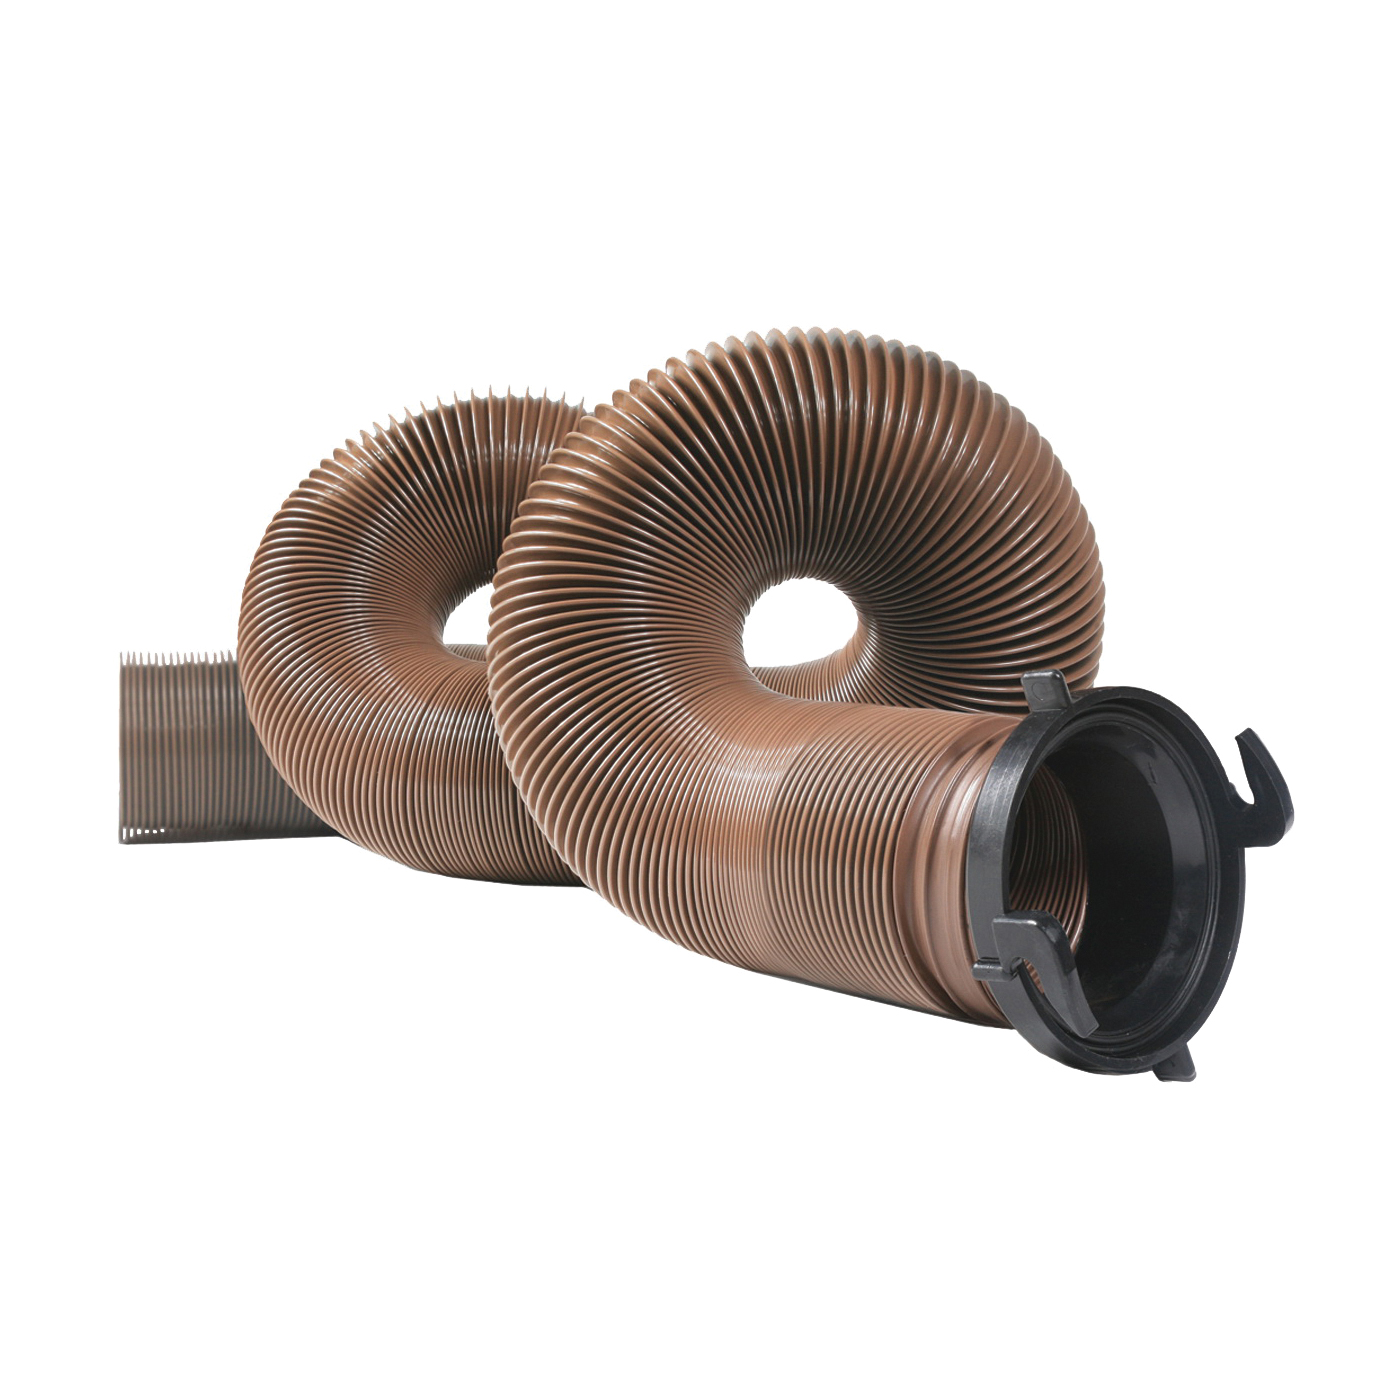 Picture of CAMCO 39691 RV Sewer Hose, 15 ft Extended, 27 in Compressed L, HTS Vinyl, Brown